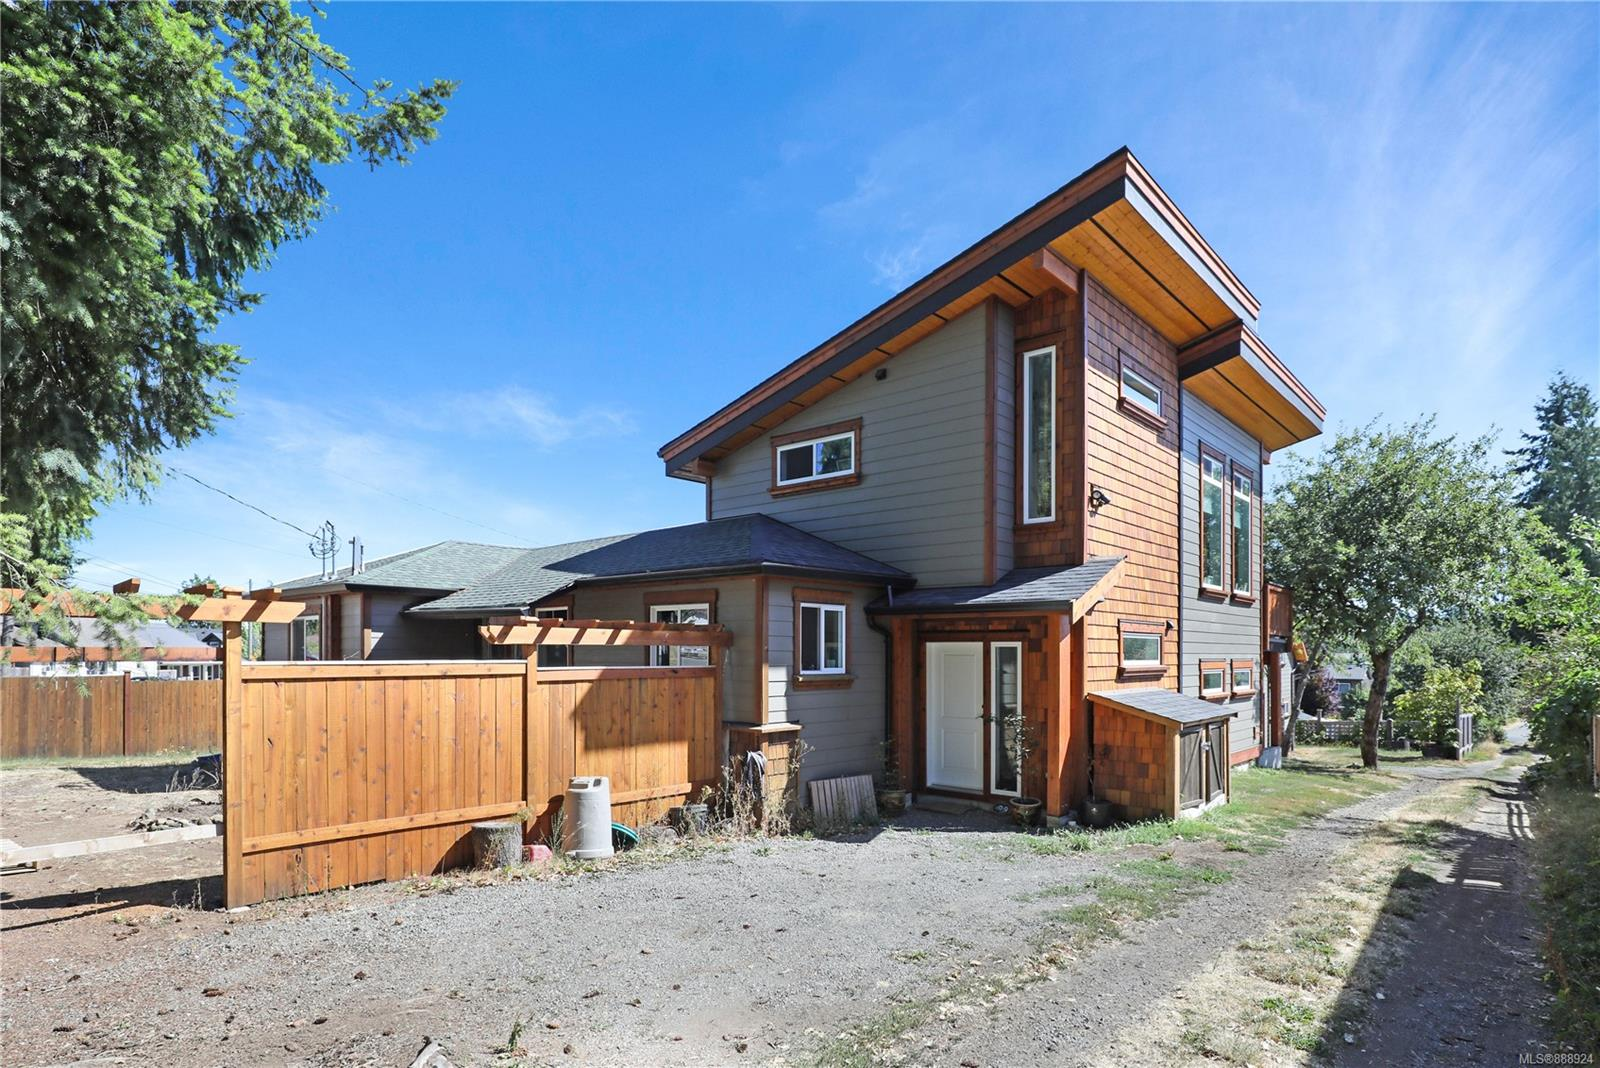 This unique property is full of revenue potential and situated in the heart of all that Cumberland has to offer. The core of the original house has its own entrance and laundry and features a full bathroom with a large tub, 2 bdrms and a den. An addition was added to the main house in 2019 featuring high ceilings, modern appliances and mountain views. A shared laundry connects two separate living areas in this new addition. The property also features a 1200 sq/ft secondary dwelling (ADU) with living space above a large garage. The features of this separately metered ADU include vaulted ceilings, modern appliances, outdoor shower, private driveway and custom details throughout. Exterior details on each building include hardy board siding, old growth reclaimed Red Cedar trim and striking black accents. Thought and care has been exercised at every step of the building process and the result is a stunning property with a cohesive feel and efficient layout. Your Cumberland lifestyle awaits!